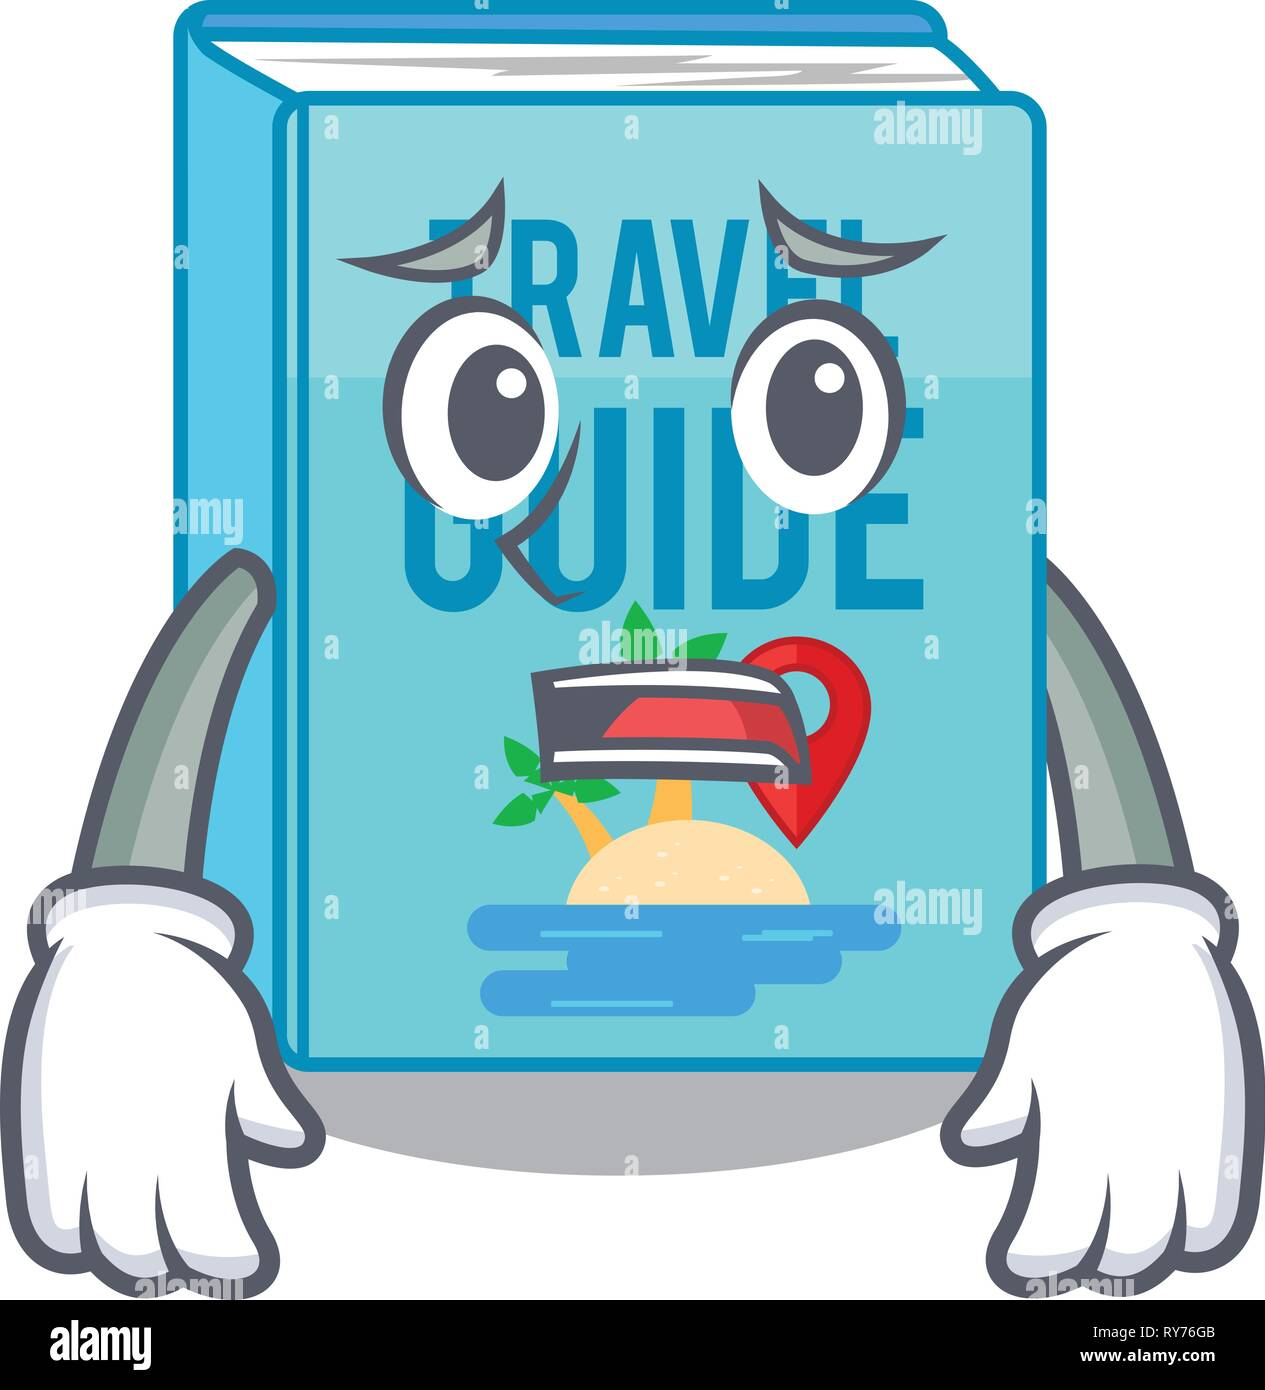 Afraid travel guide book placed rack character Stock Vector